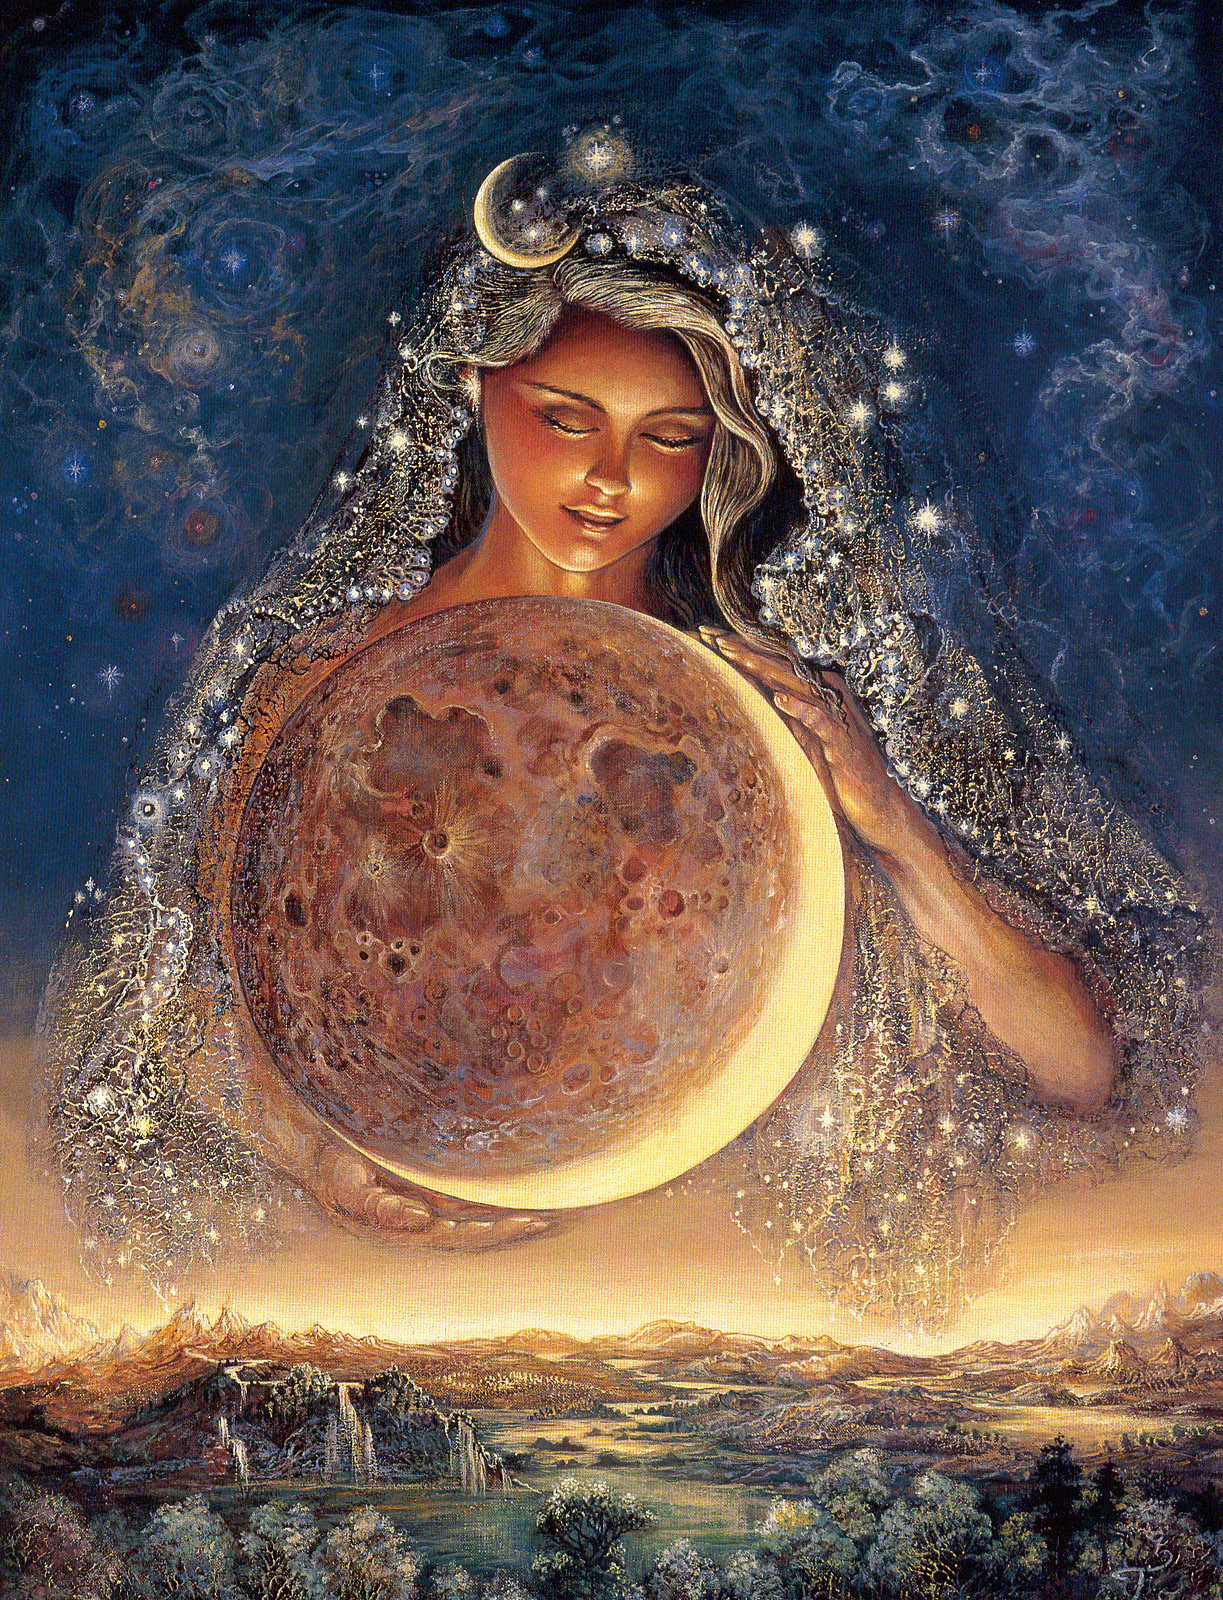 josephine_wall_goddesses_moon%20goddess.jpg